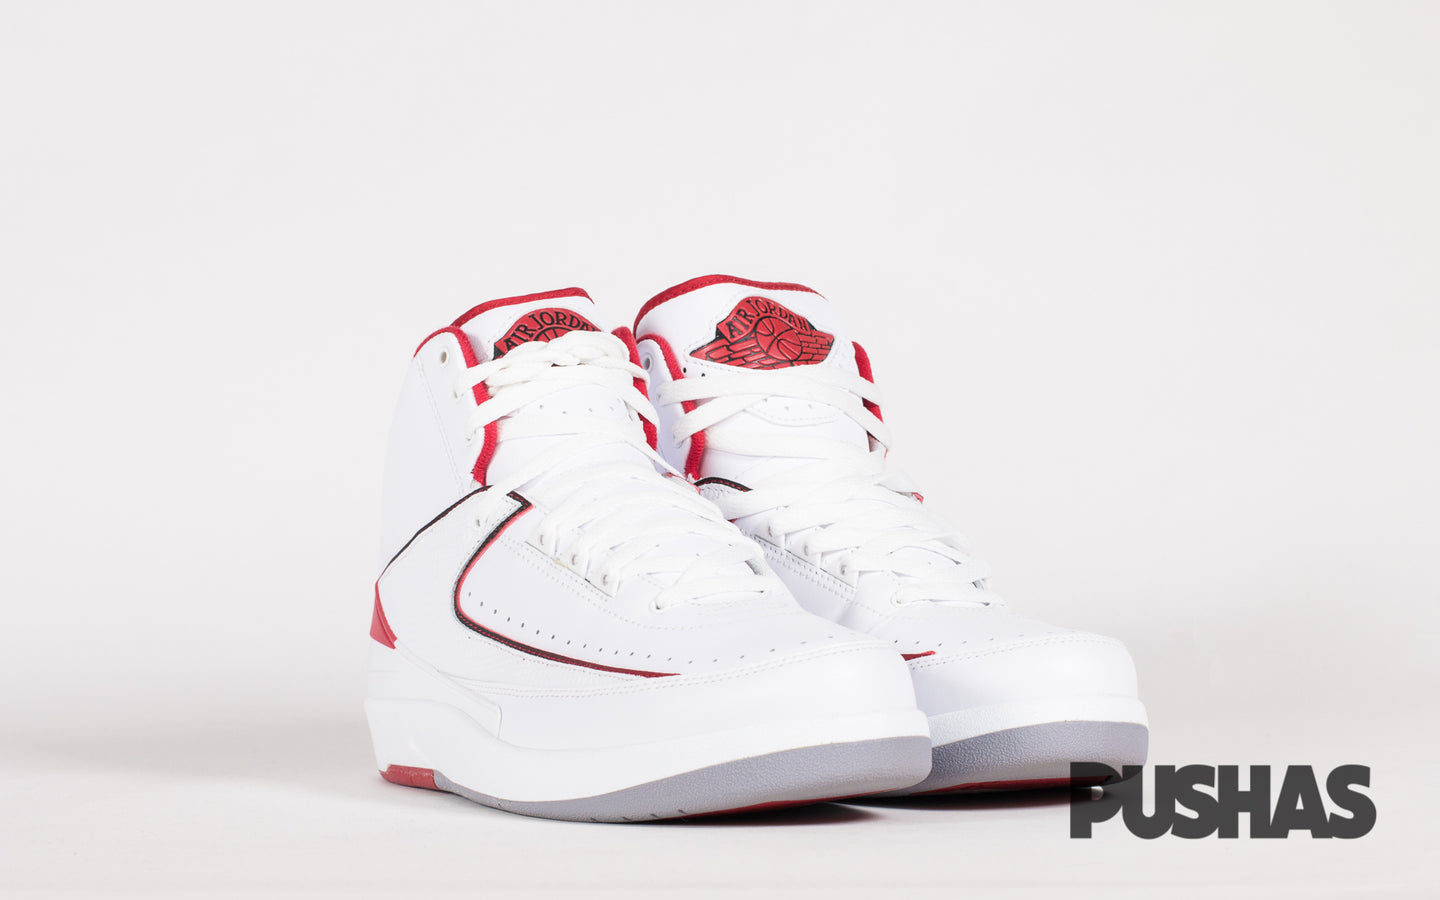 pushas-Nike-Air-Jordan-2-White-Varsity Red